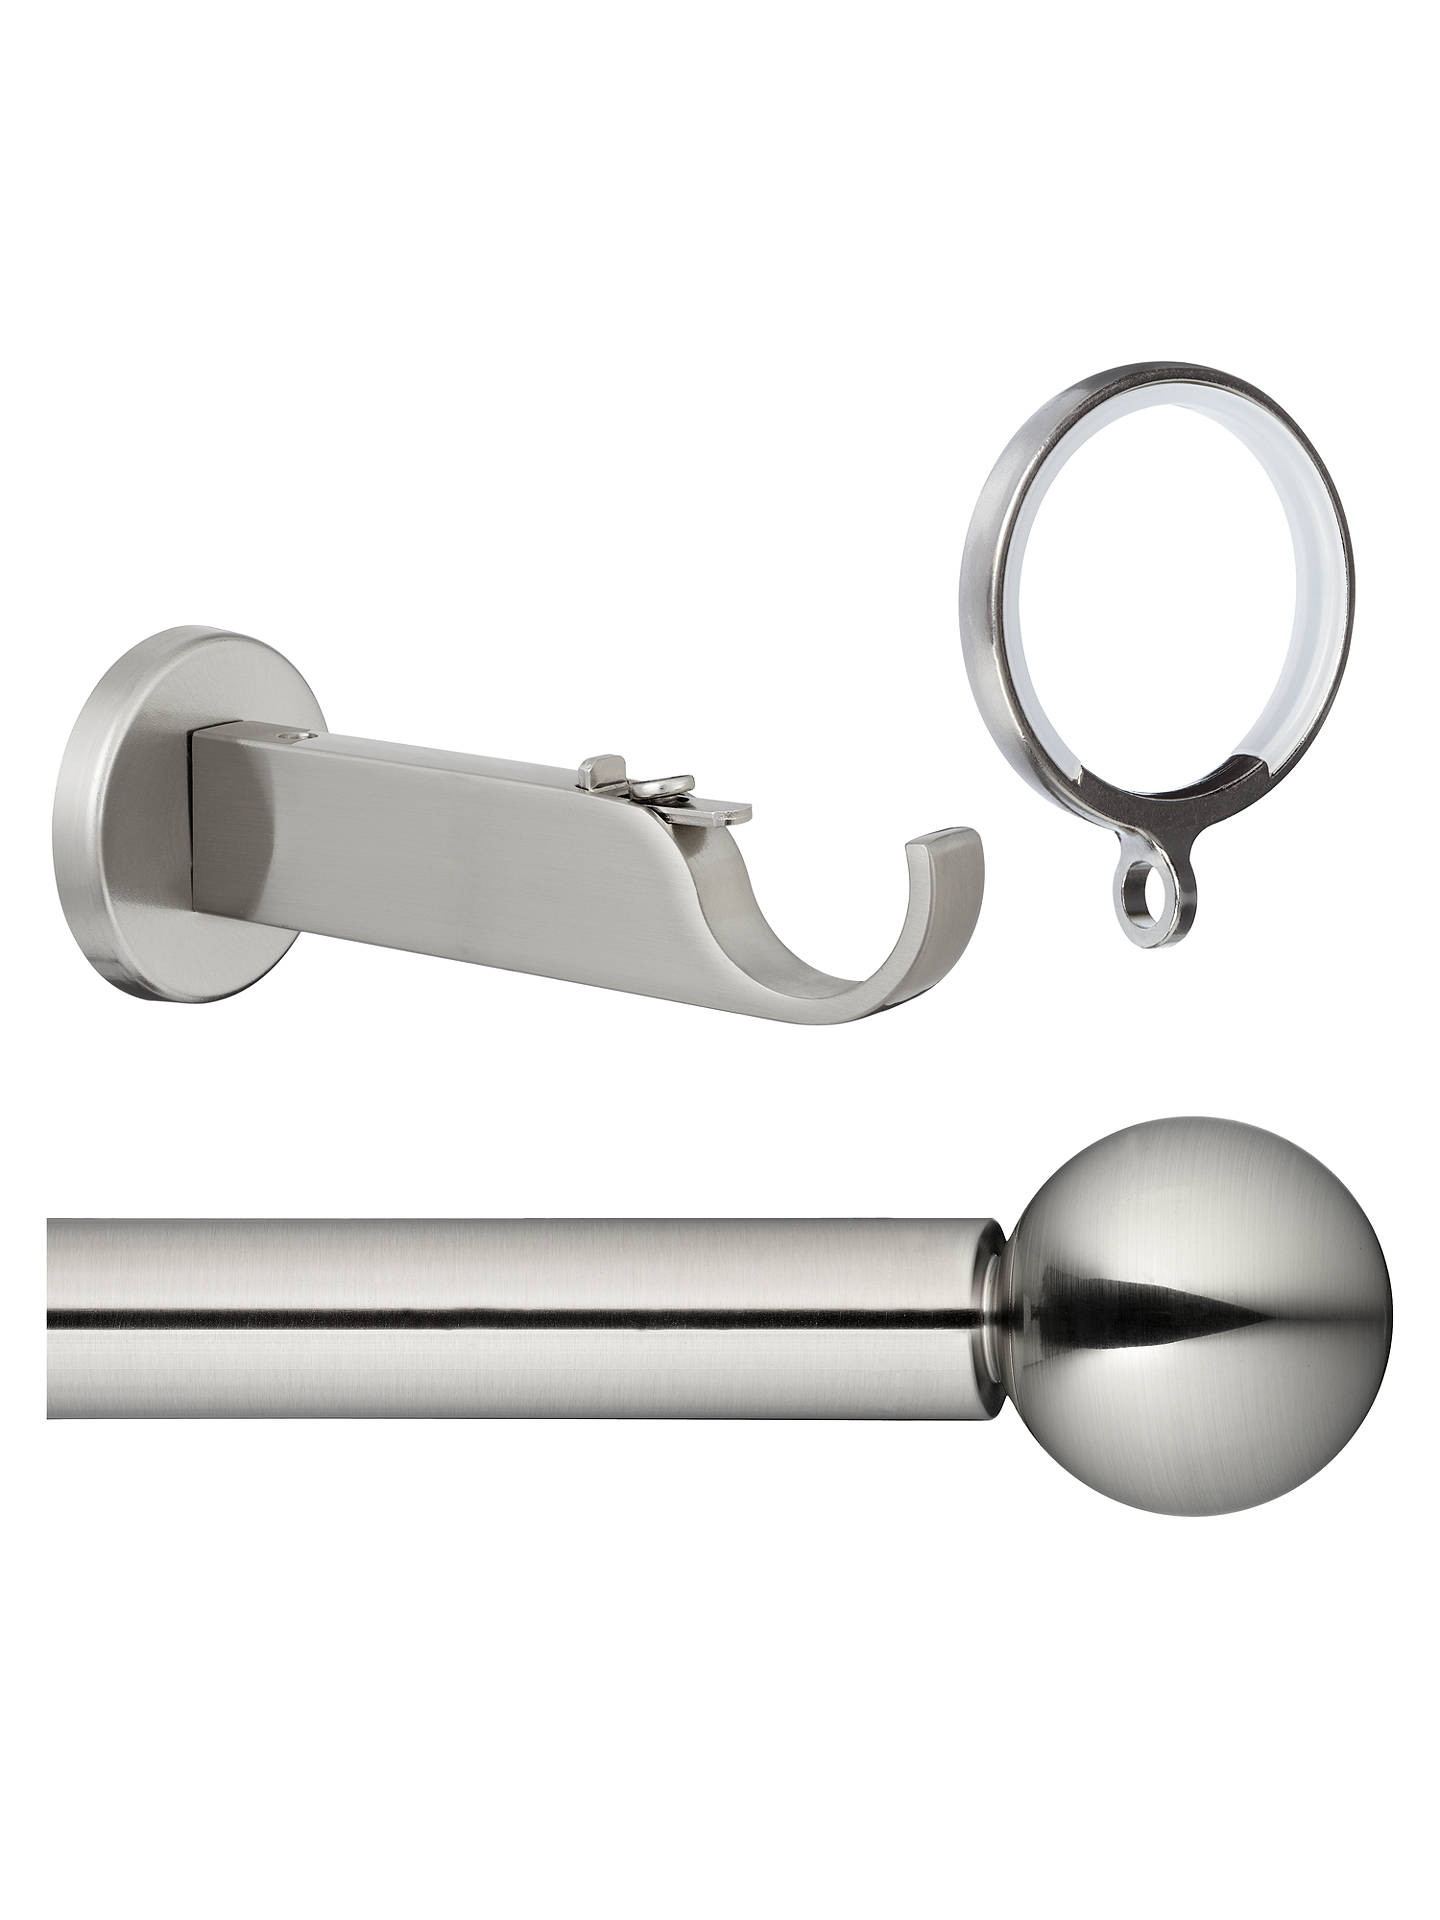 BuyJohn Lewis Steel Curtain Pole Kit, Contemporary Brackets, L300cm x Dia.28mm Online at johnlewis.com